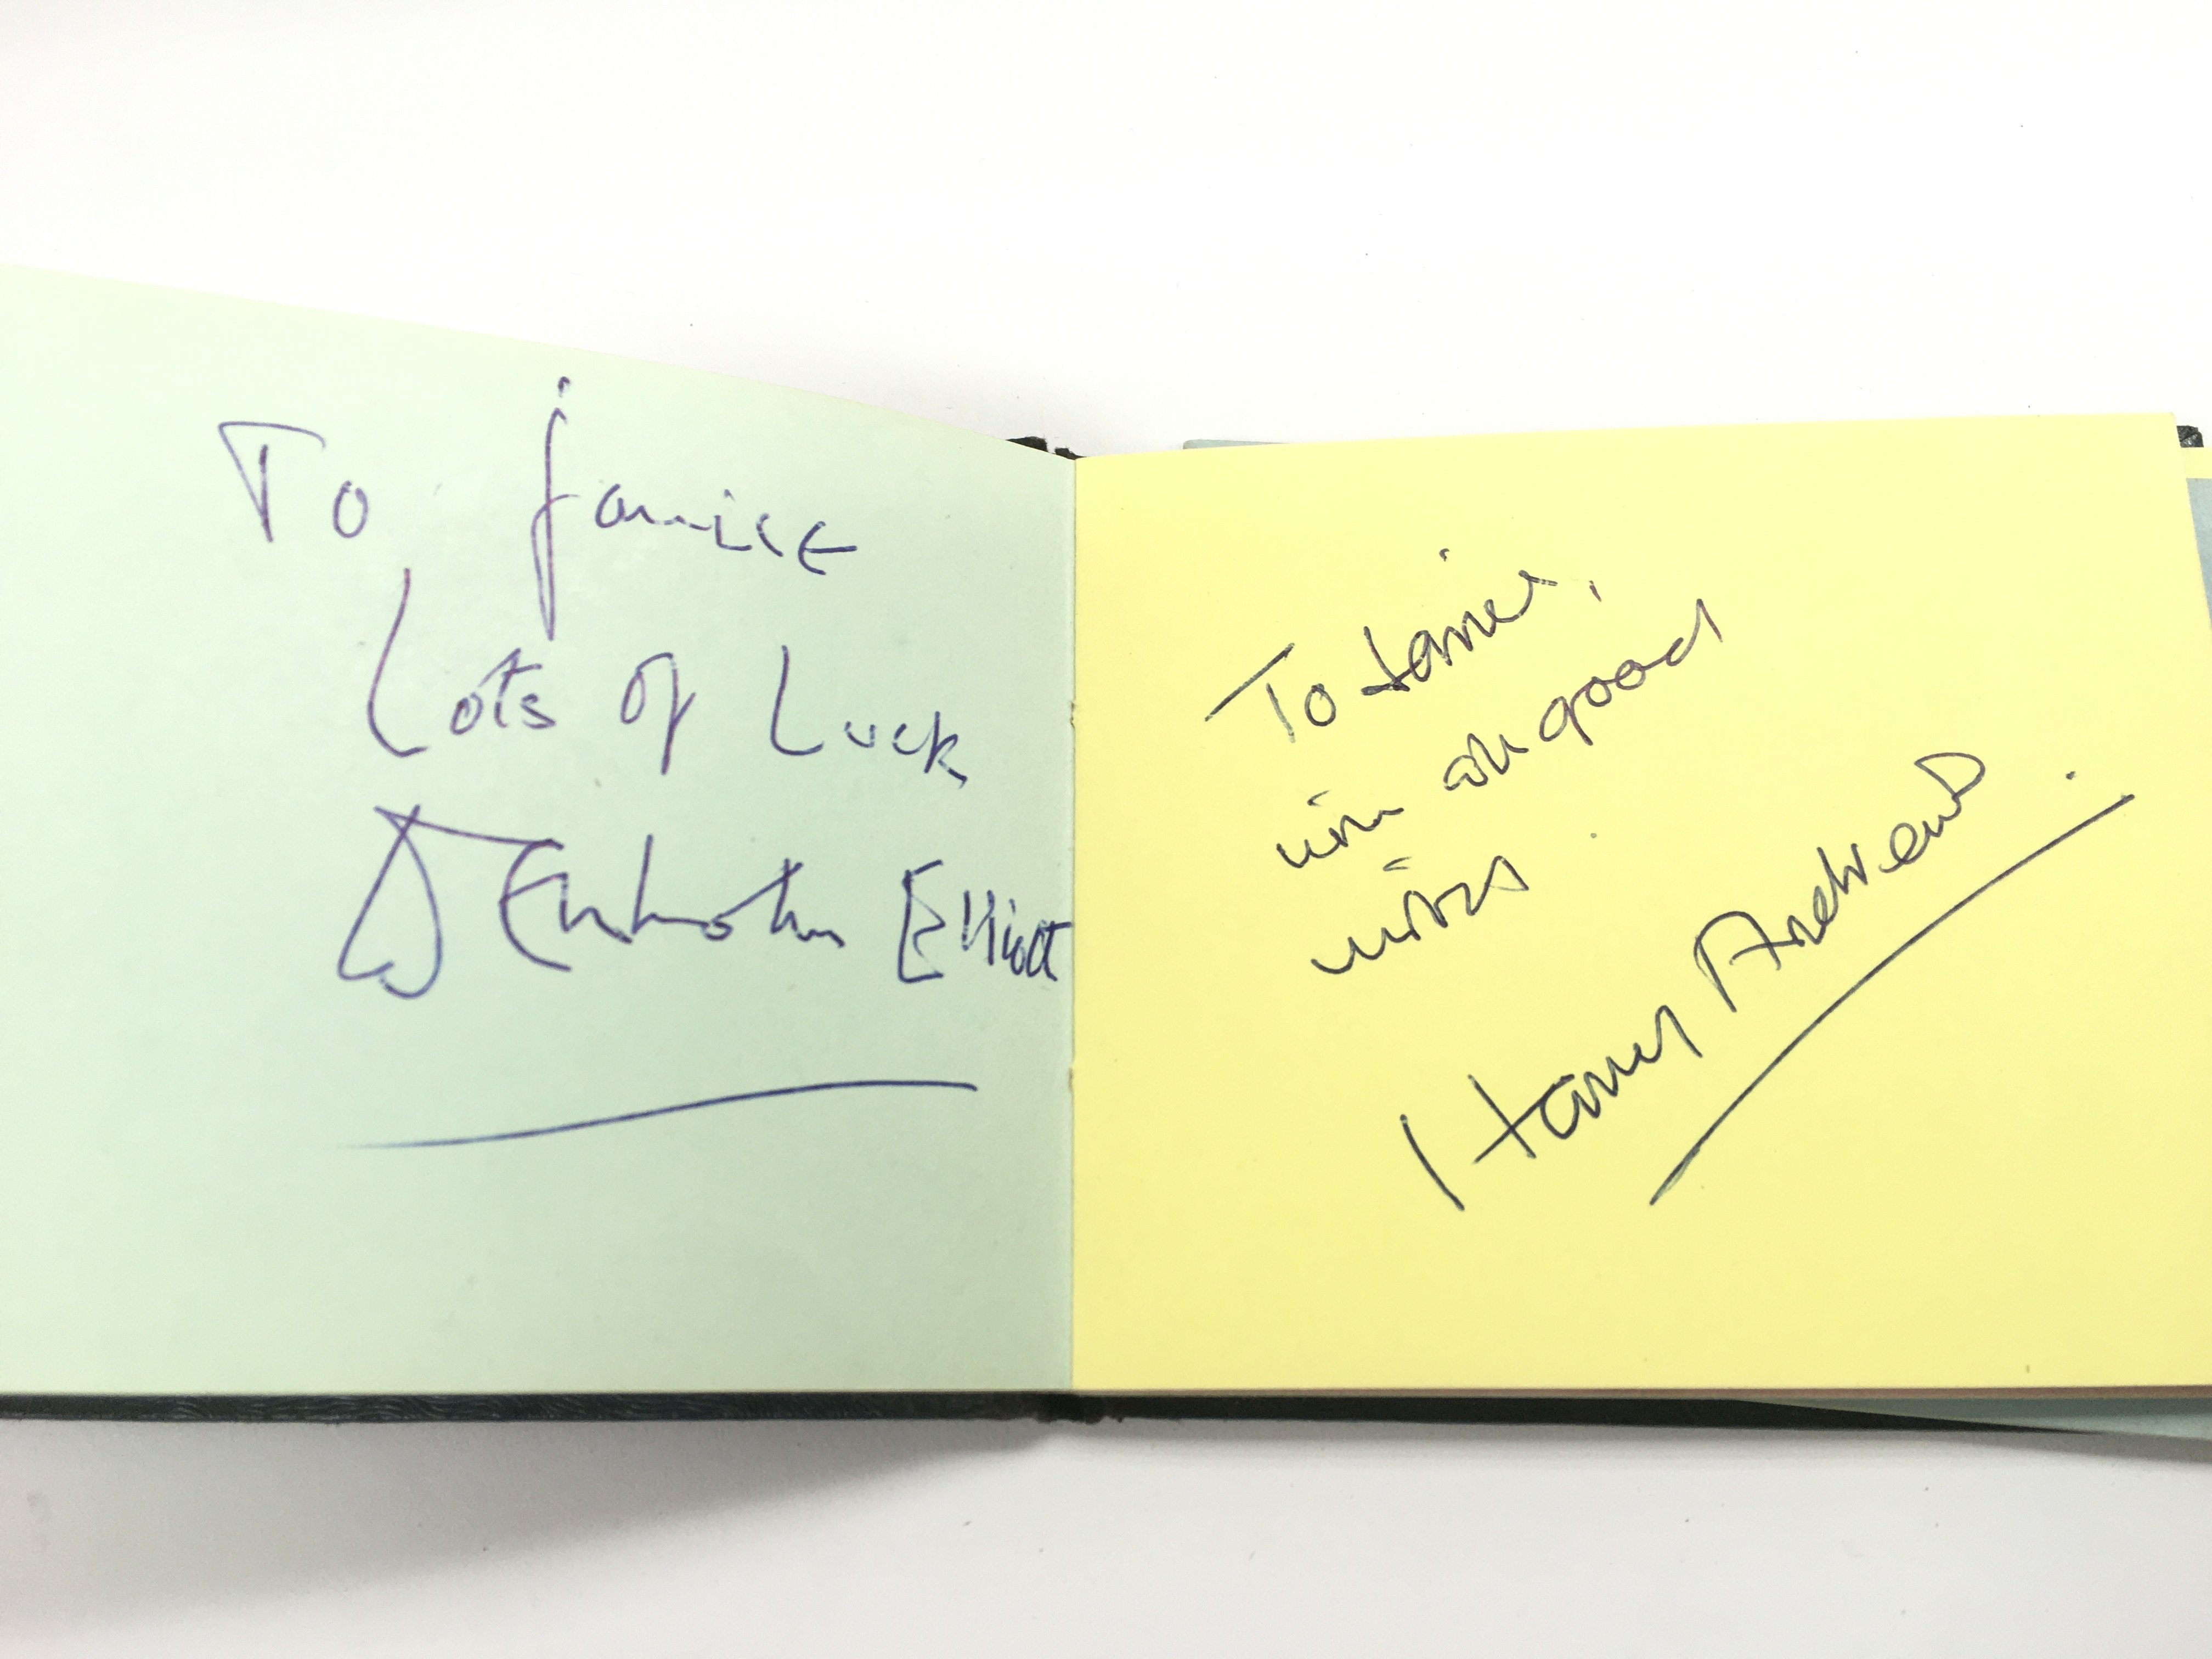 An autograph booklet containing various autographs - Image 5 of 5